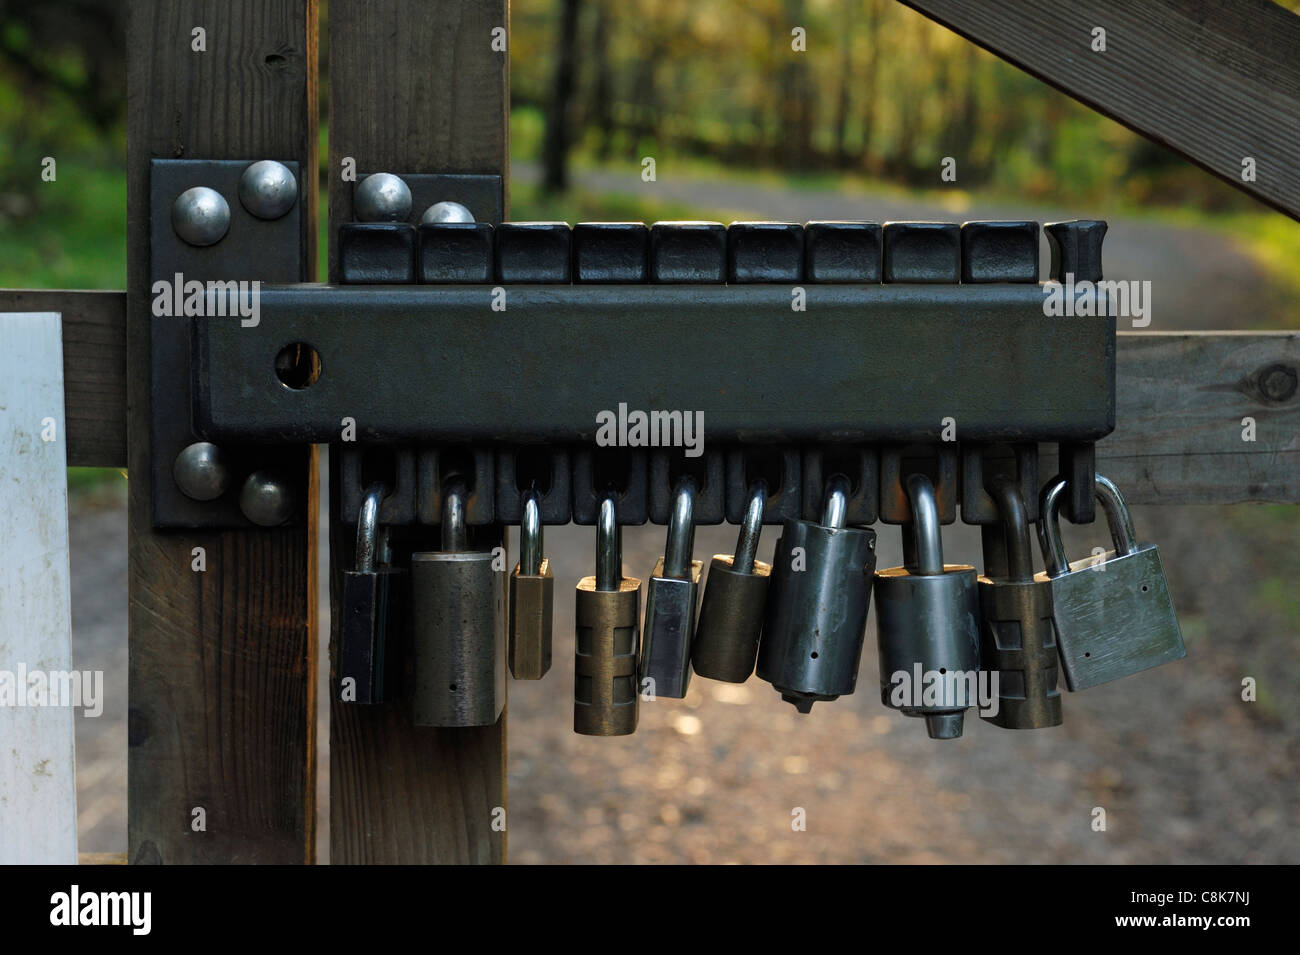 Concept de cadenassage cadenas Photo Stock